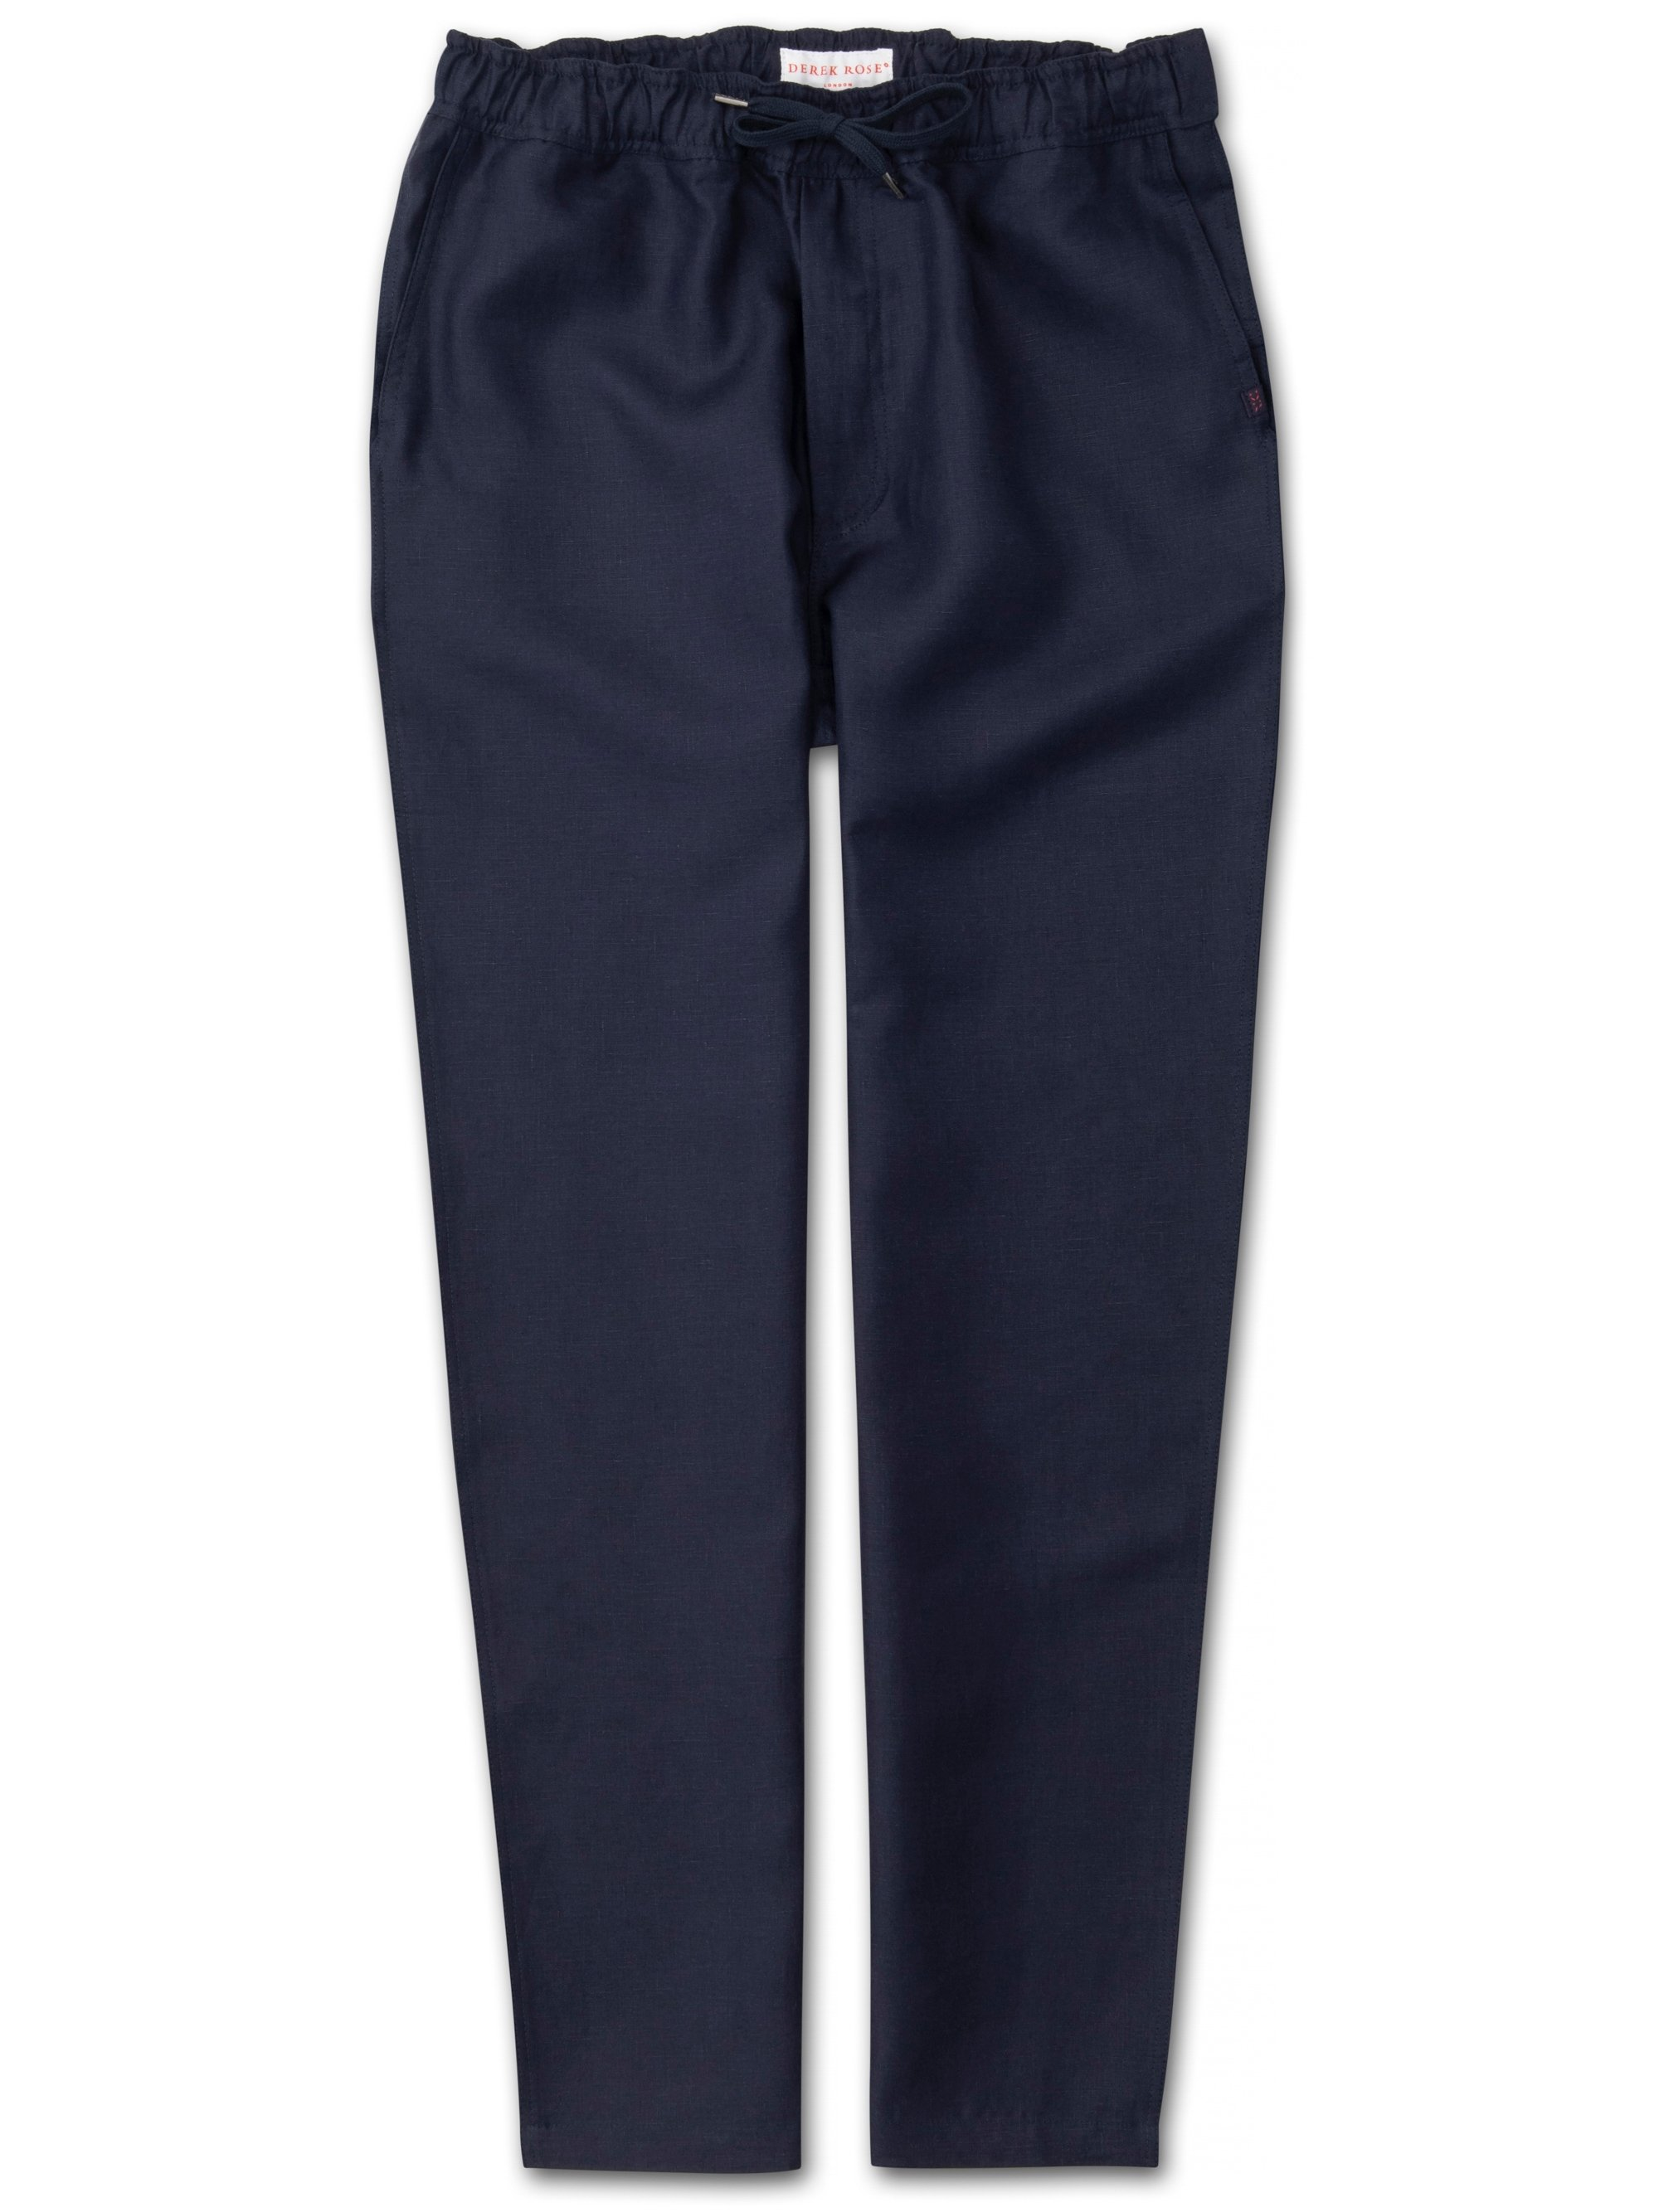 Men's Linen Trousers Sydney Linen Navy